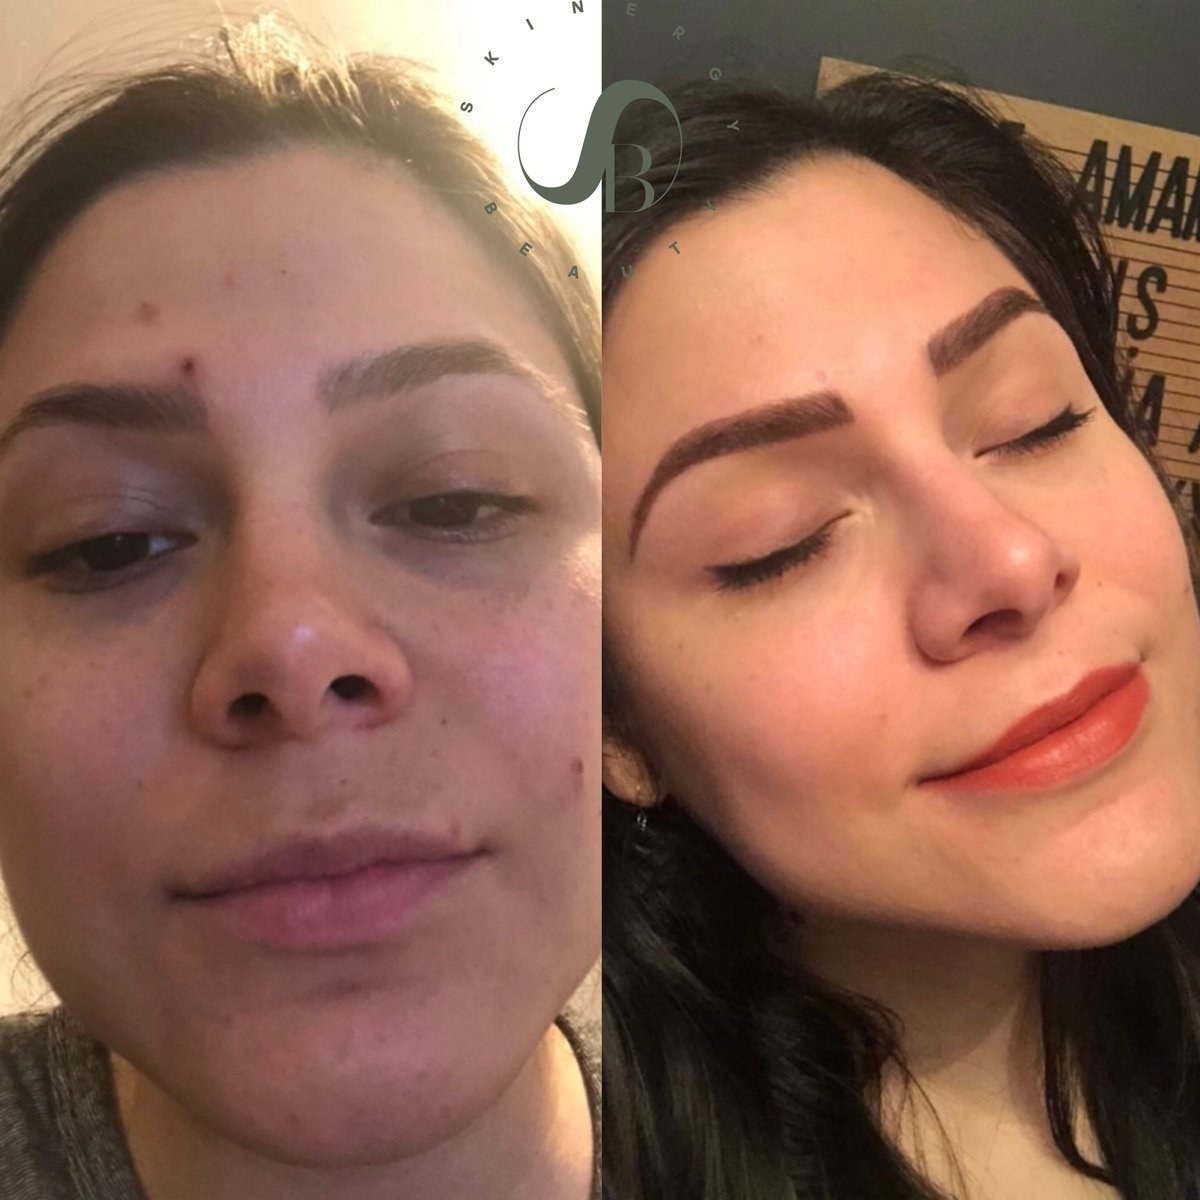 before photo of a reviewer with tired-looking skin and breakouts next to a photo of the same reviewer with clear, plumper-looking skin after using the moisturizer